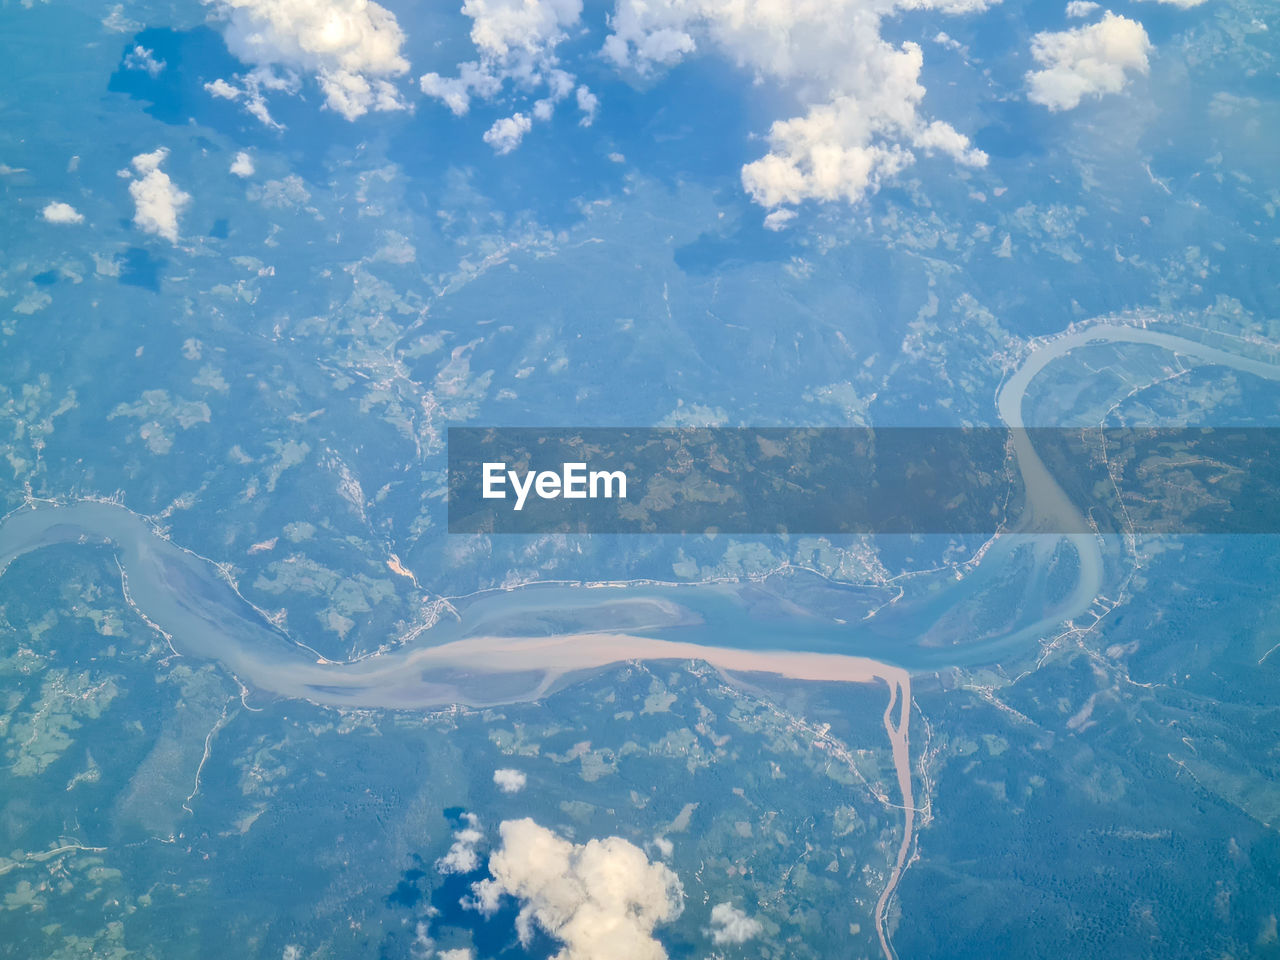 Aerial view of two rivers flowing together with clouds